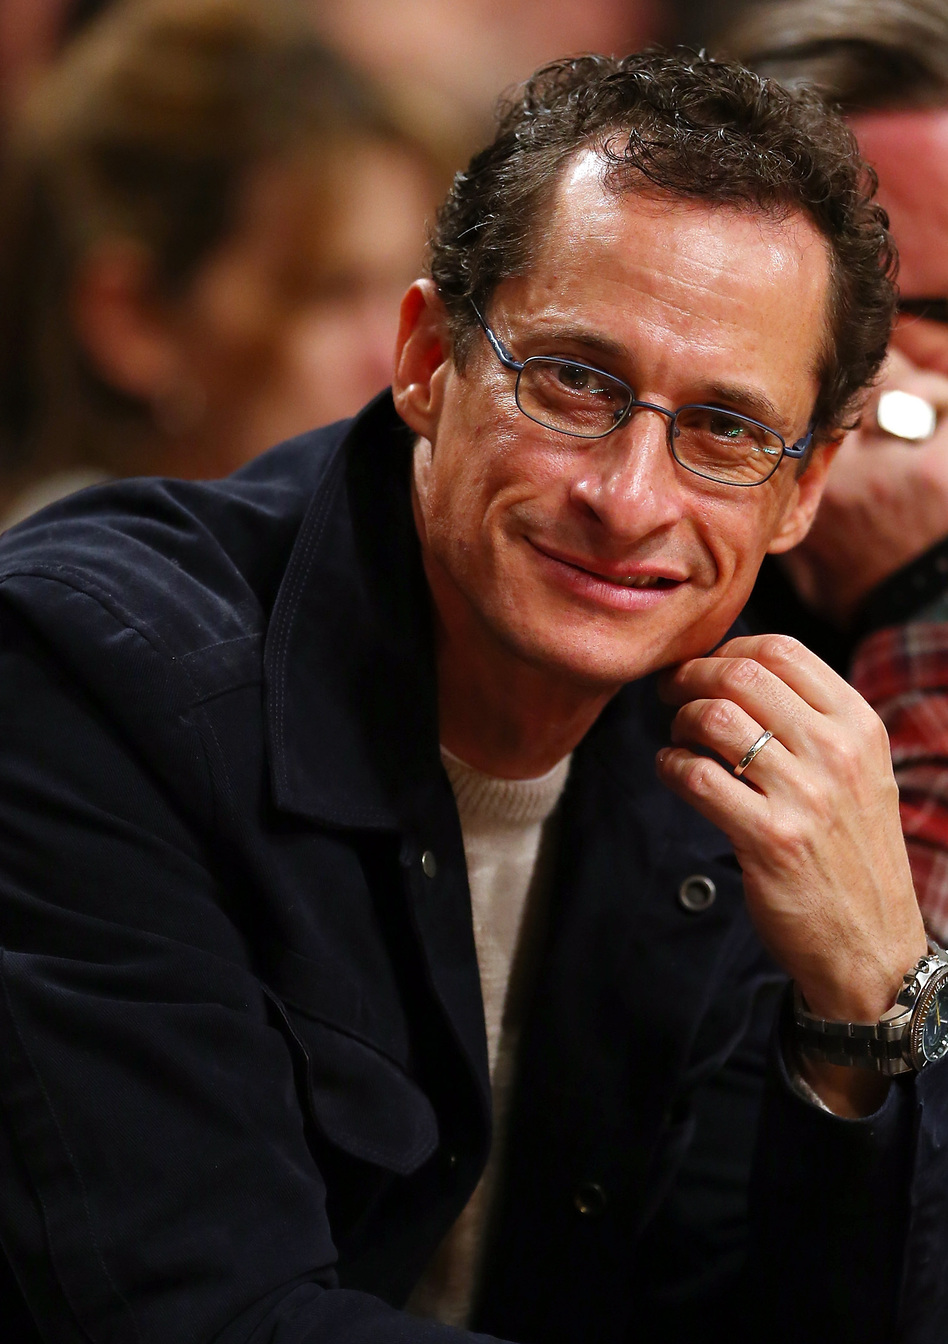 Former Rep. Anthony Weiner, D-N.Y., at a Brooklyn Nets basketball game in November 2012.